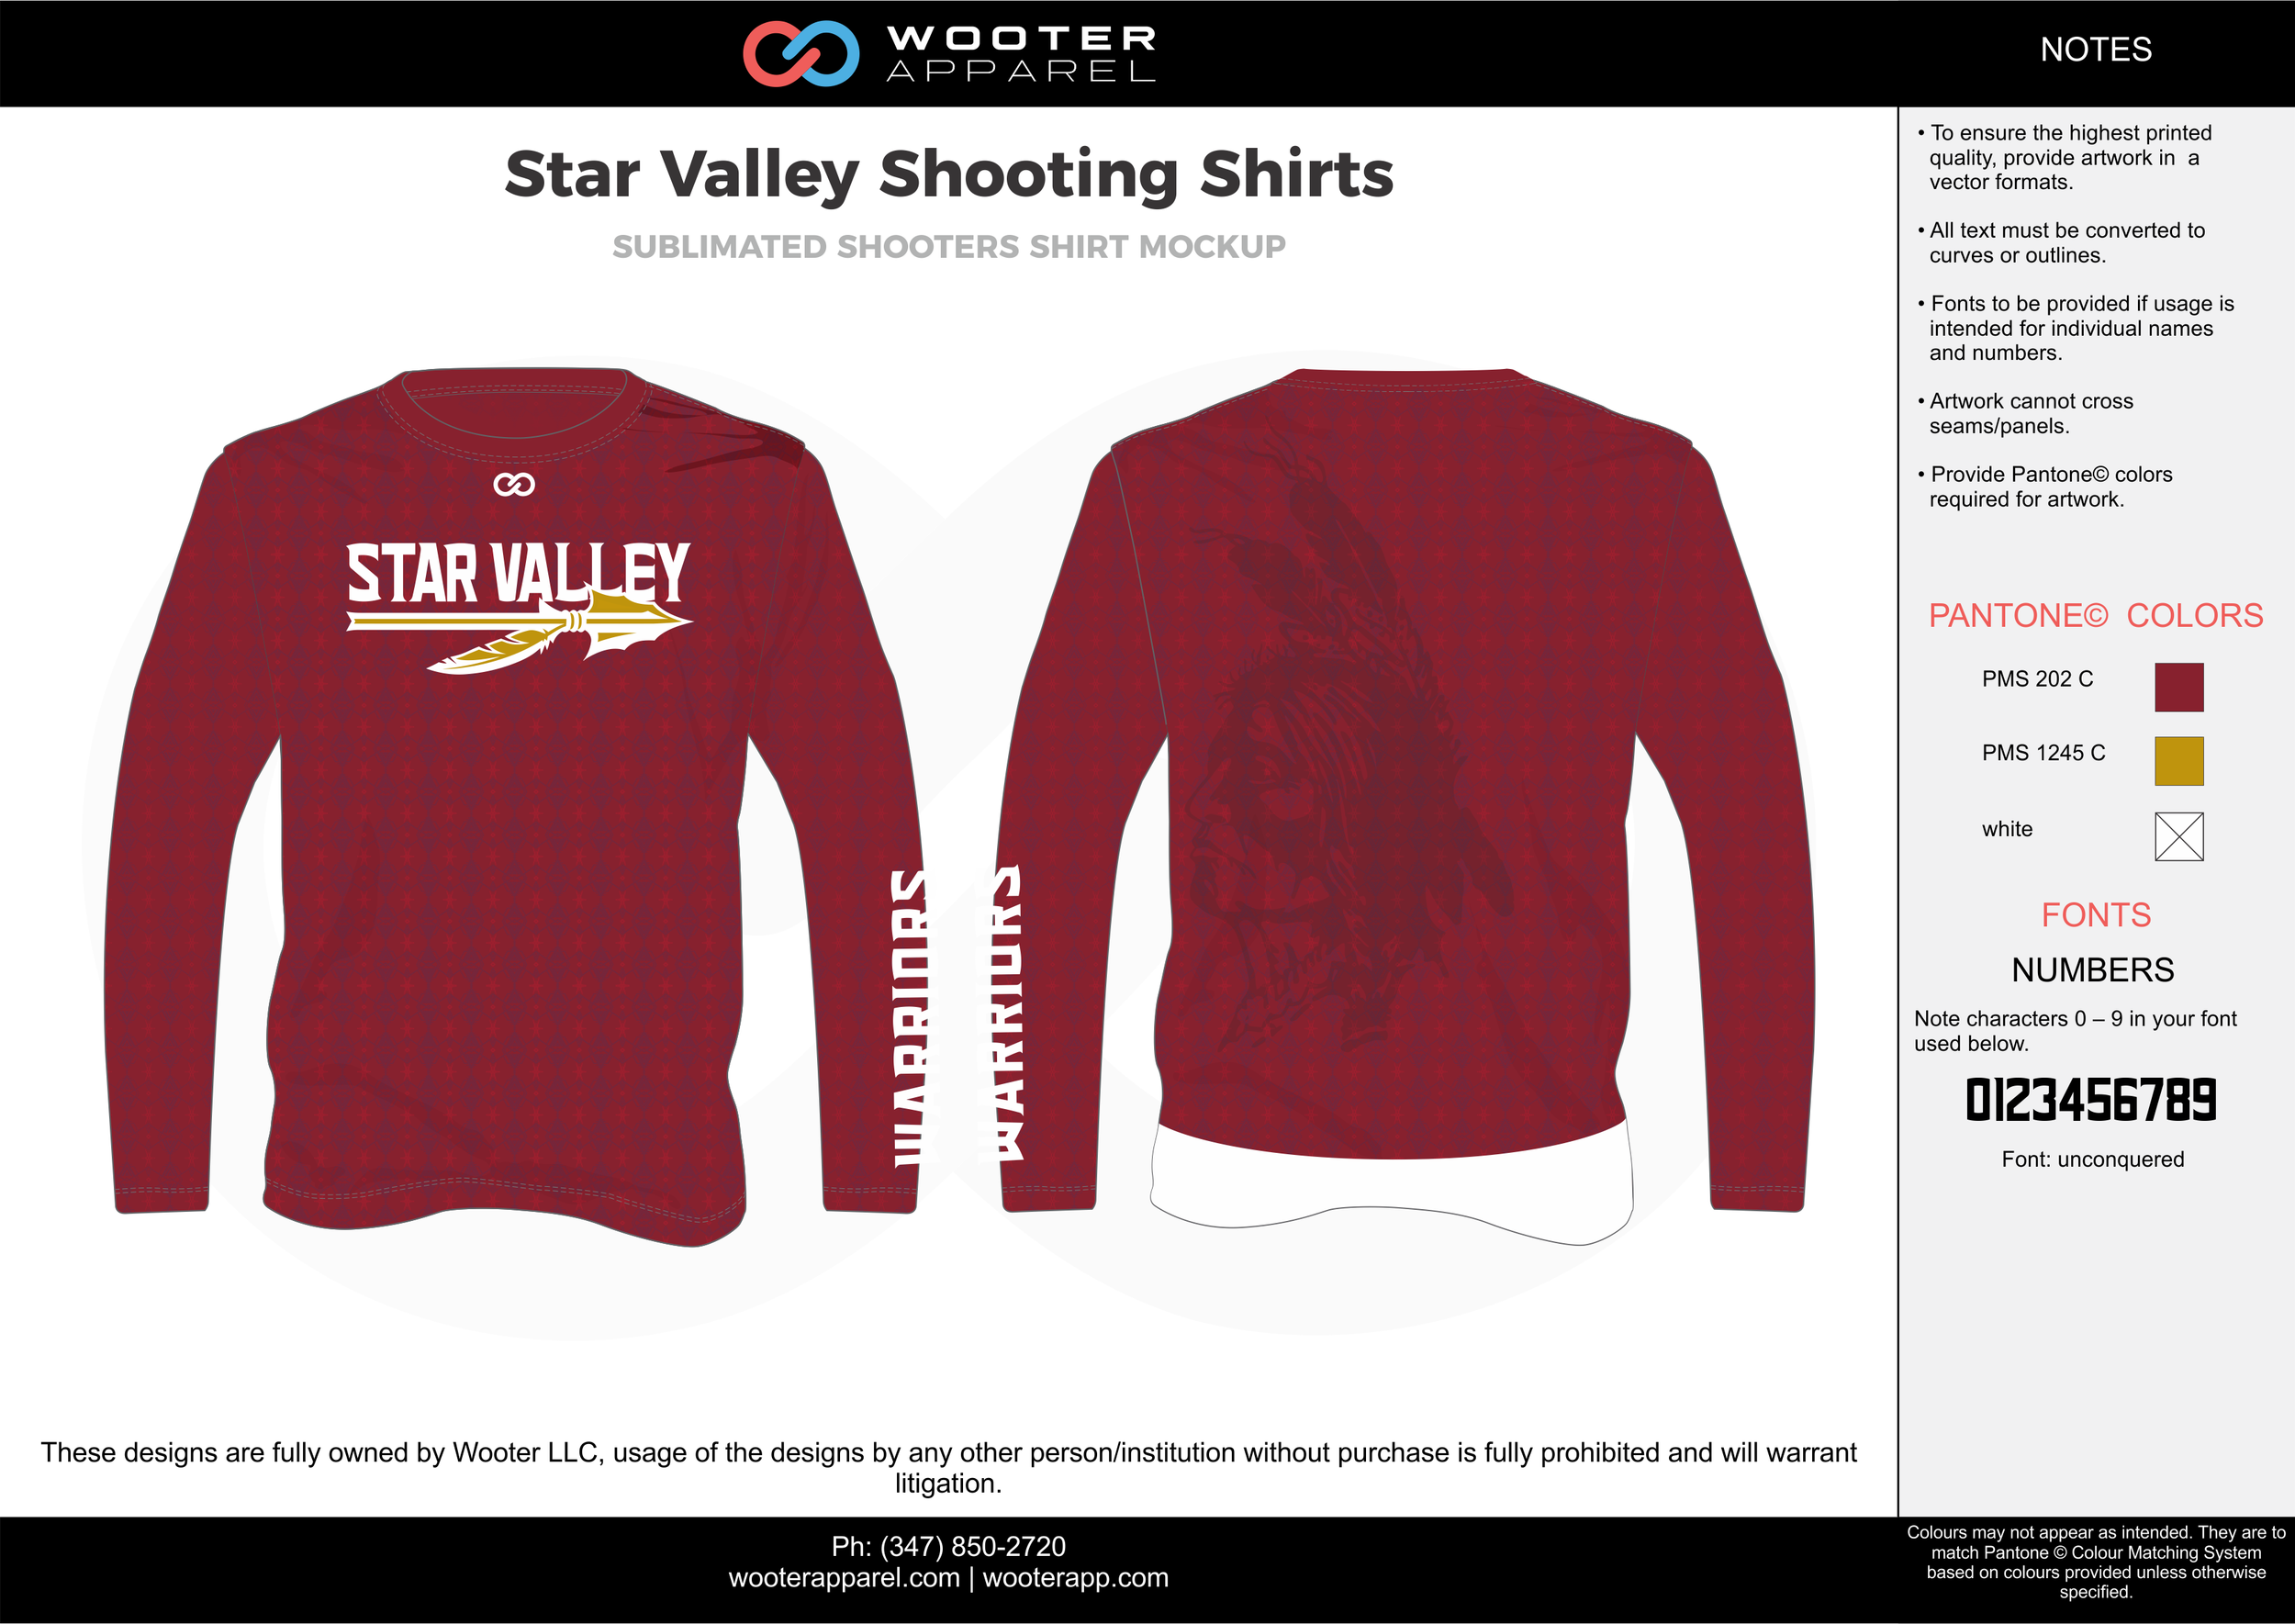 Star Valley Shooting Shirts red white yellow custom design t-shirts